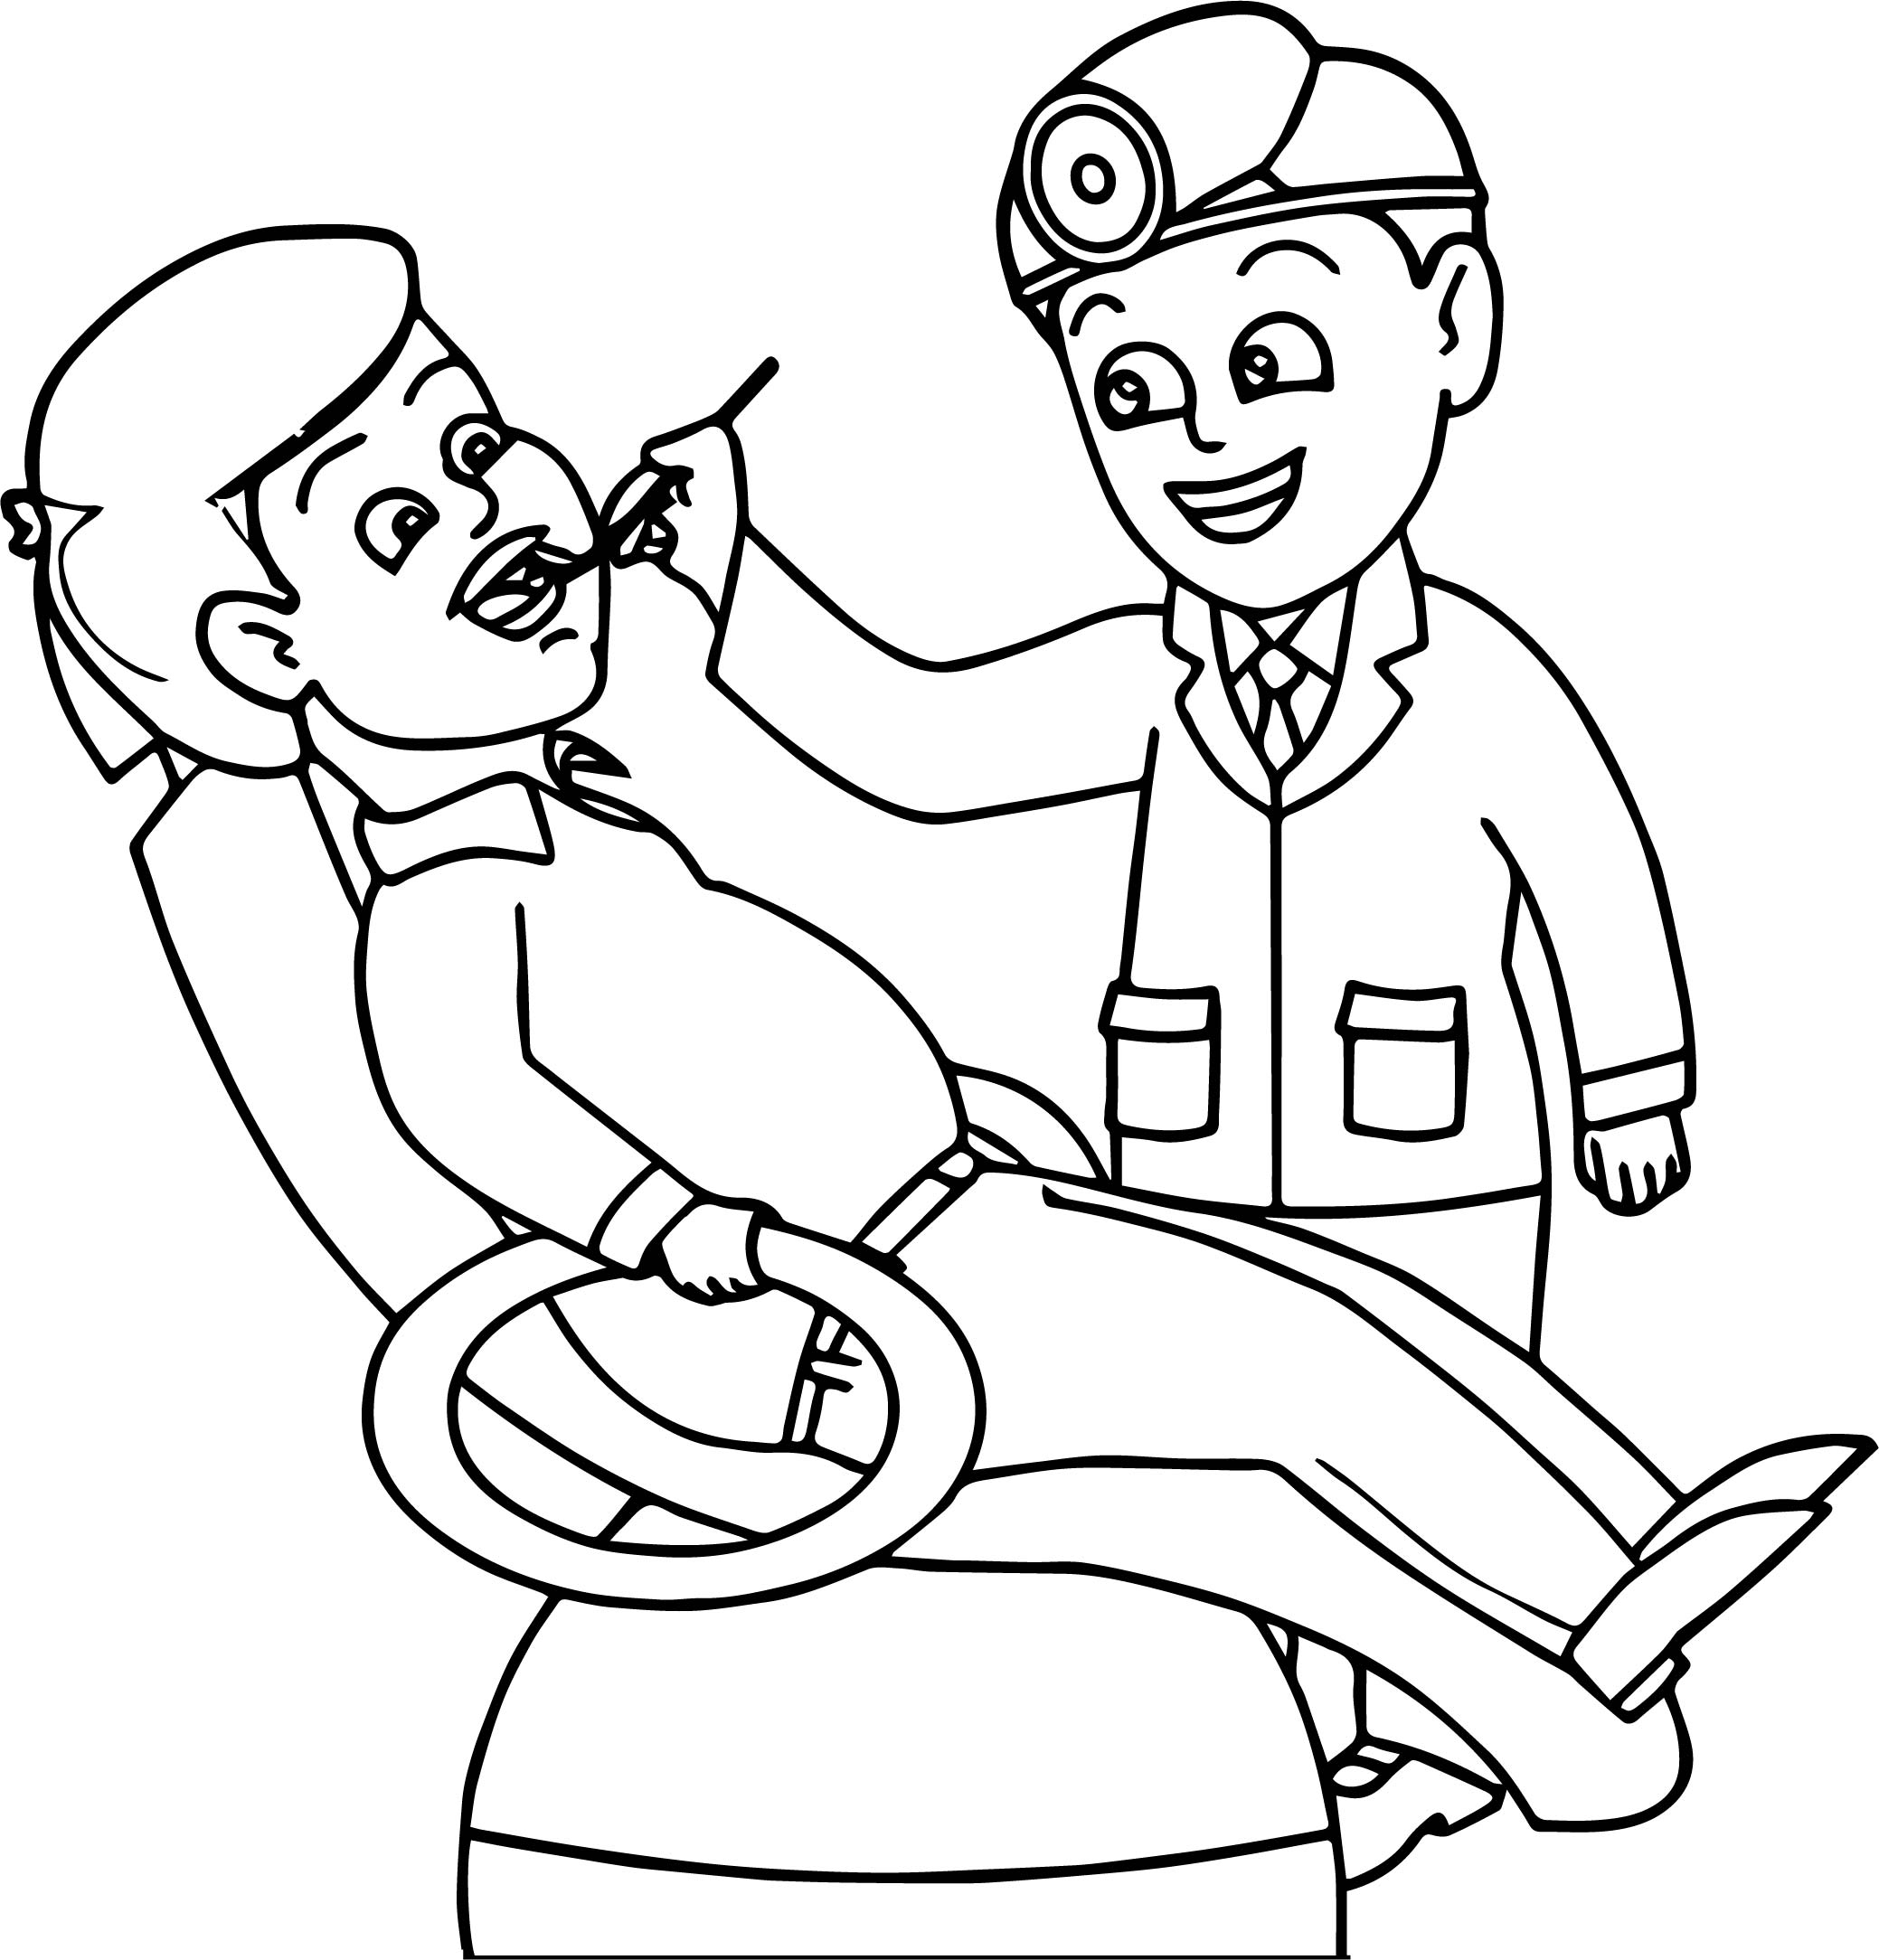 Dental Coloring Page Sheets Coloring Pages